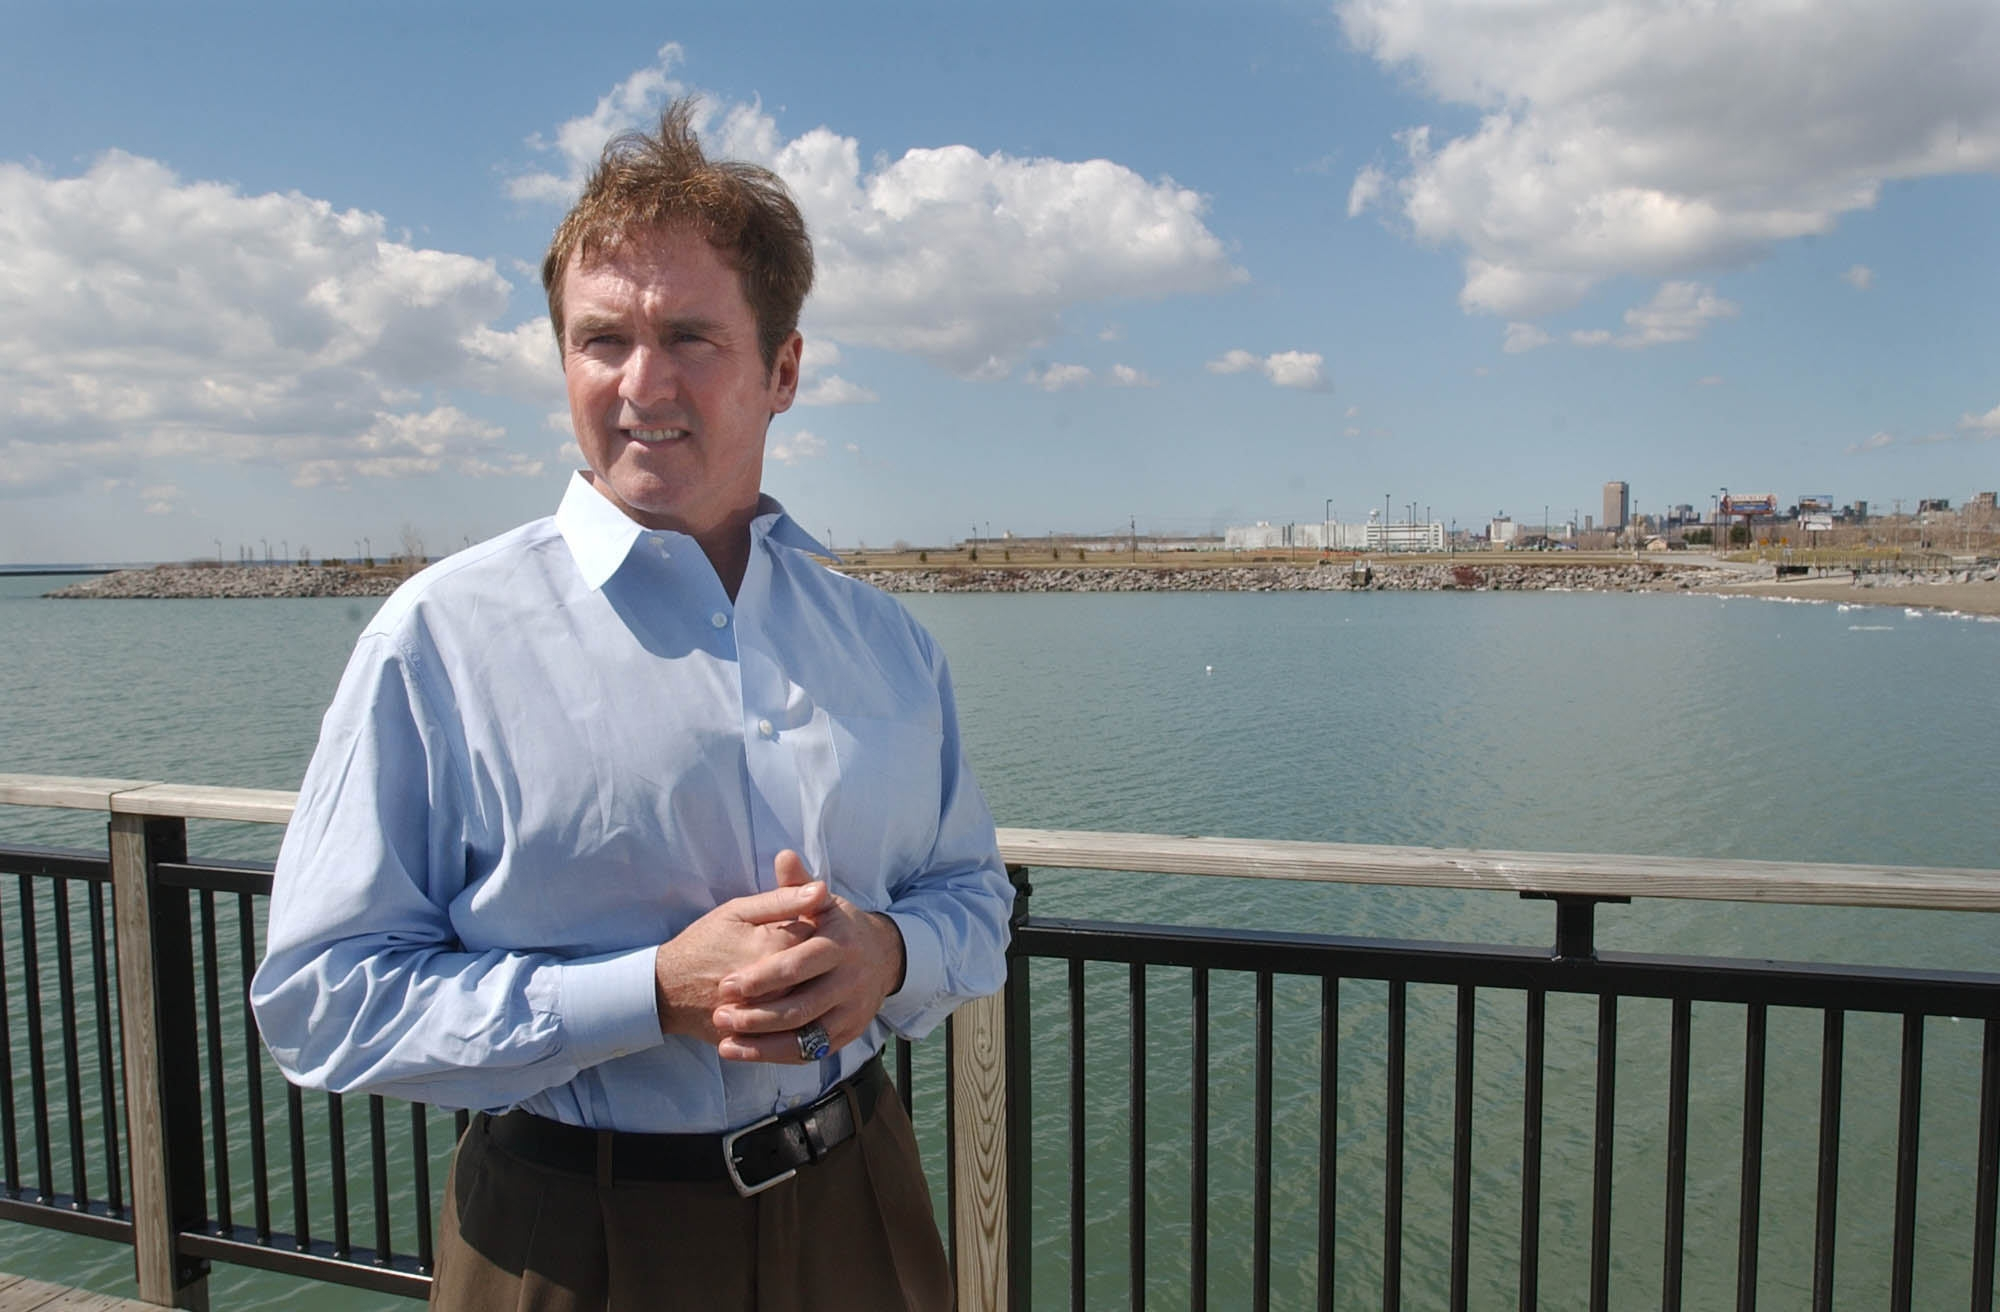 4/8/05 --  Congressman Brian Higgins on the fishing pier at Gallagher Beach, which was result of the first part of a waterfront revitalization project Higgins enacted as state assemblyman.  He wants to use his new position as congressman to enact more comprehensive projects.   Photo by Derek Gee  FOR DOUG TURNER STORY